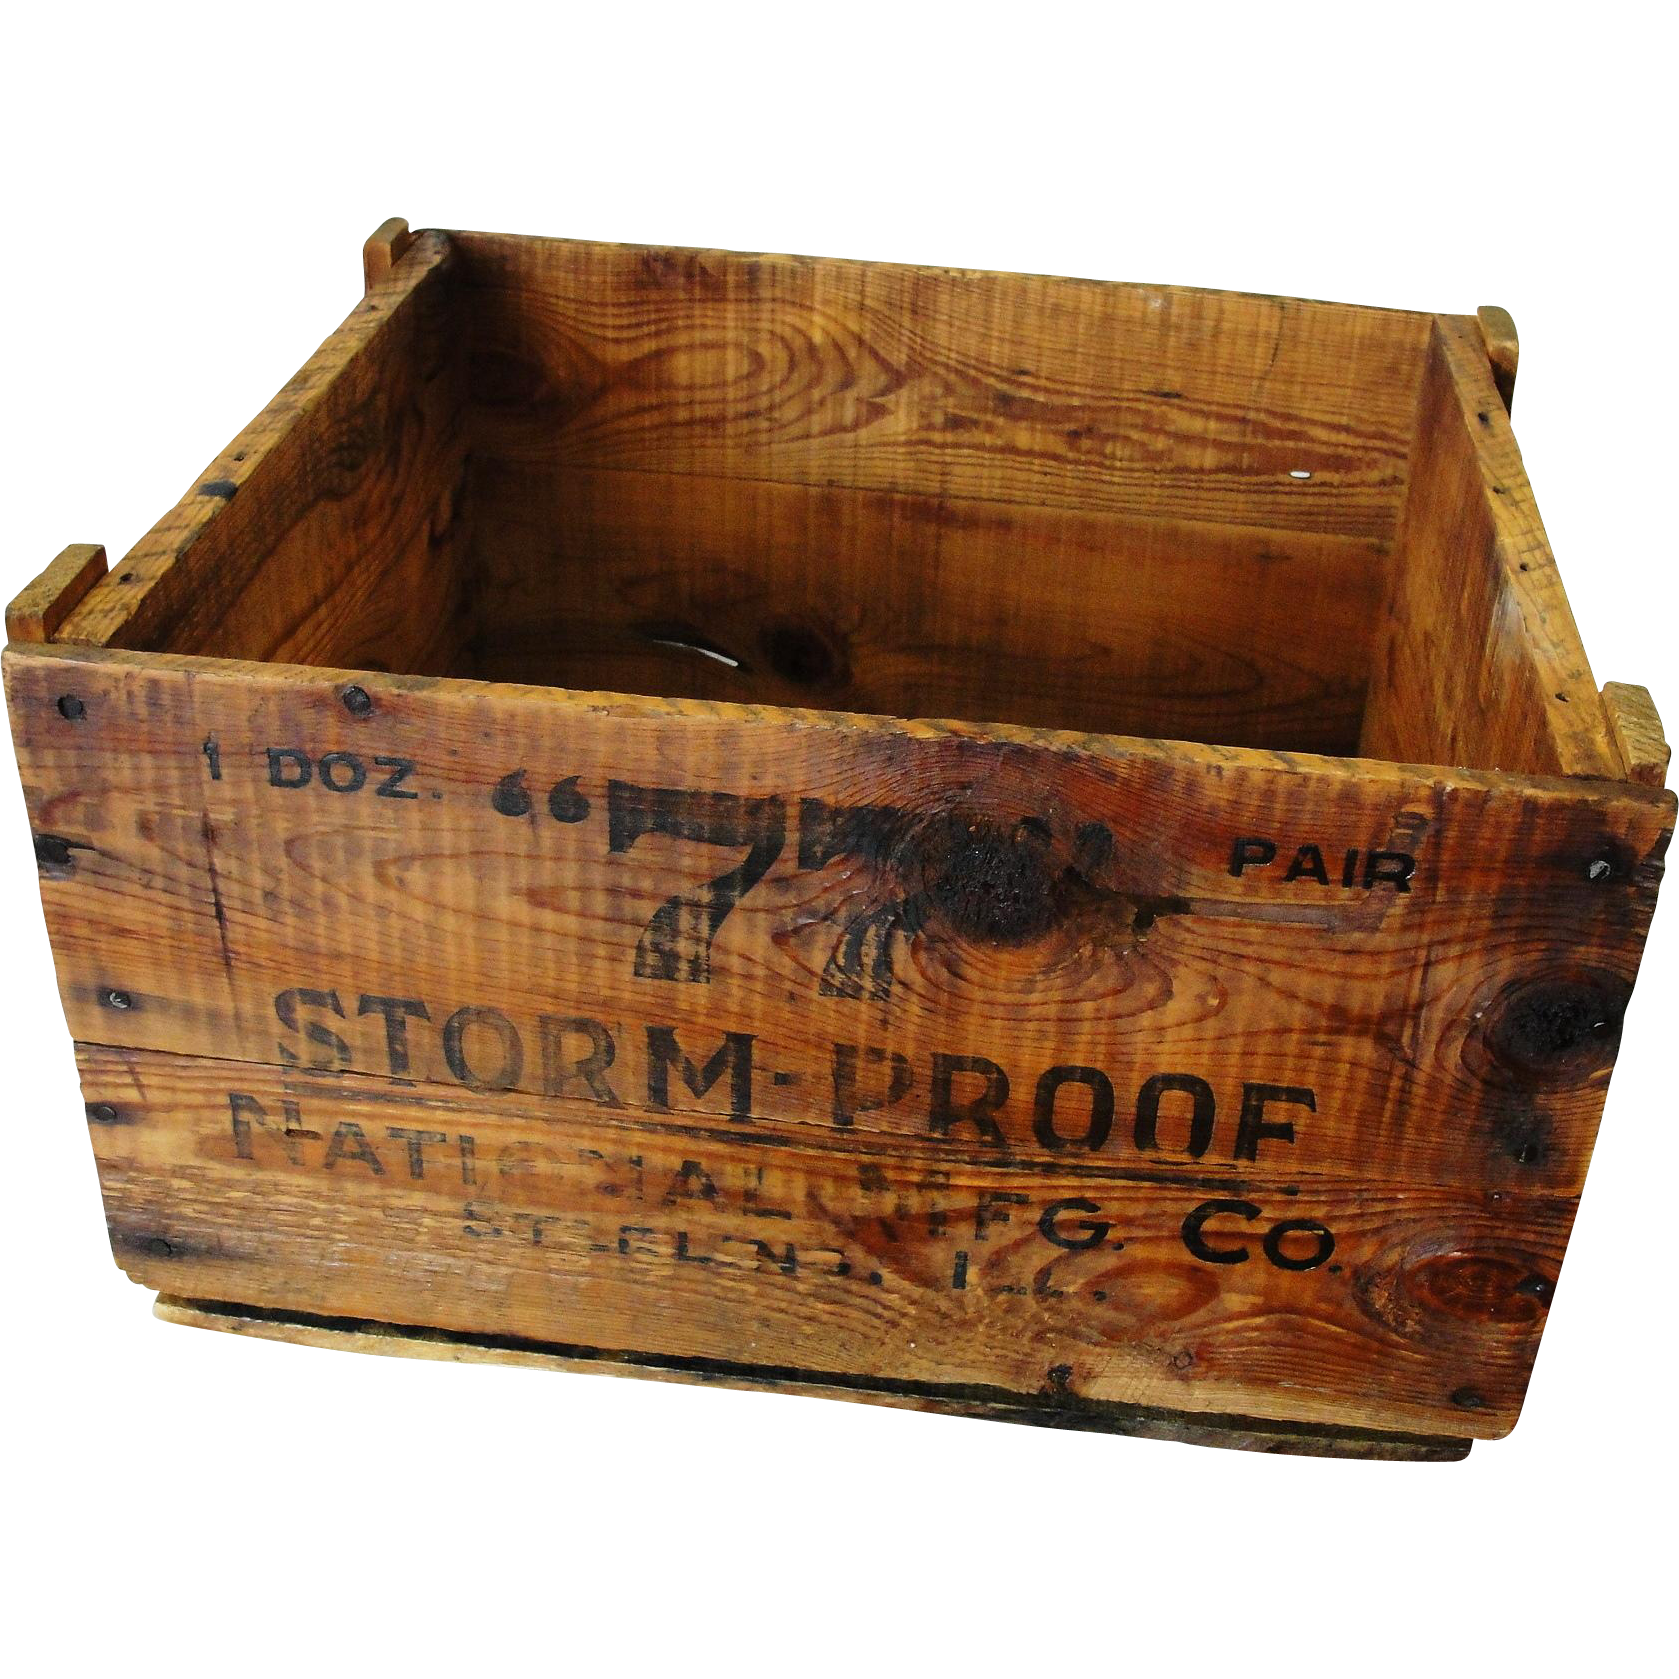 Vintage Wooden Advertising Box Storm Proof Barn Door Hangers